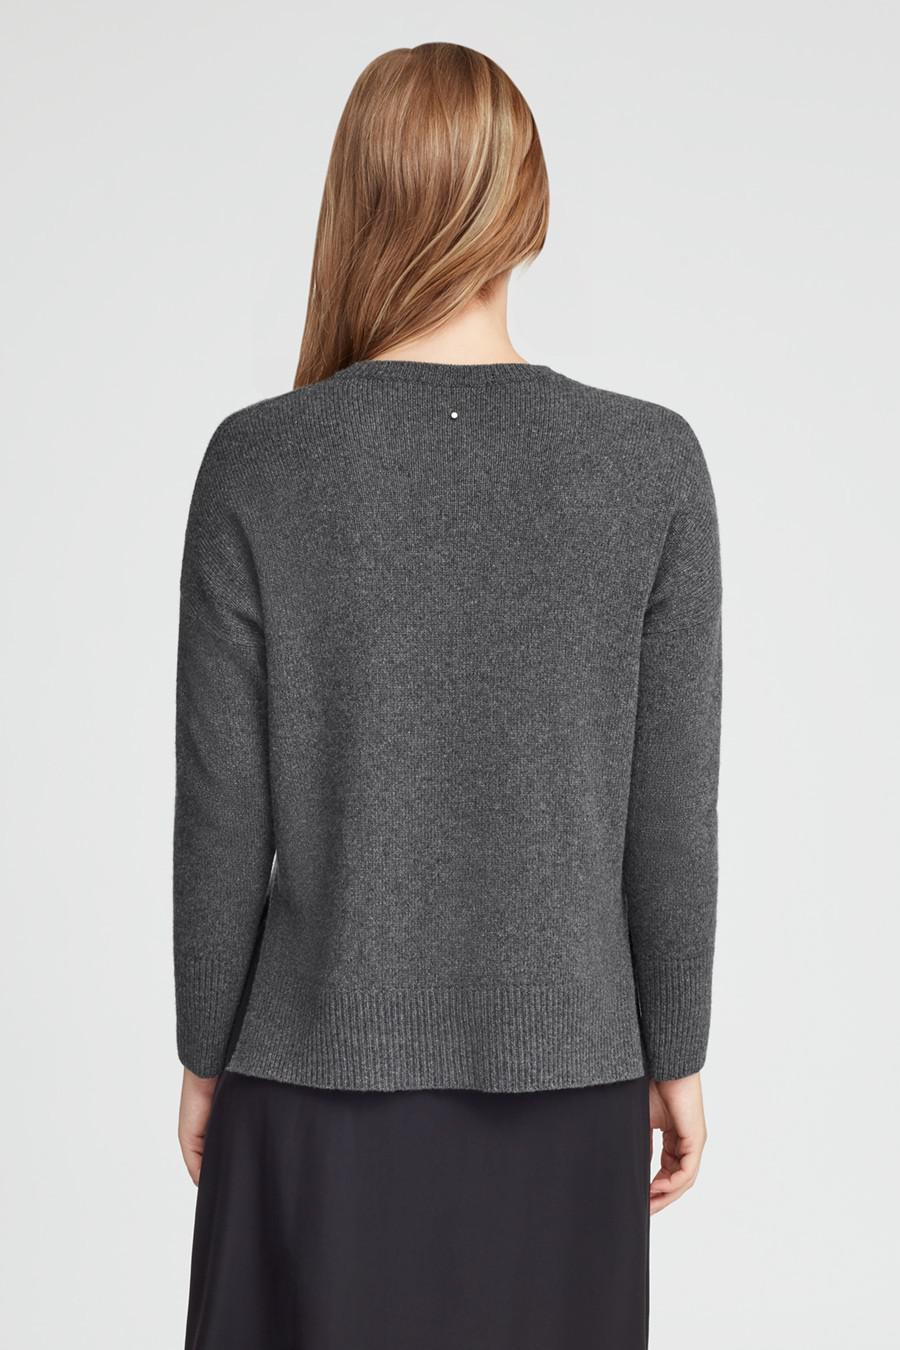 Women's Recycled Crewneck Sweater in Charcoal | Size: 2